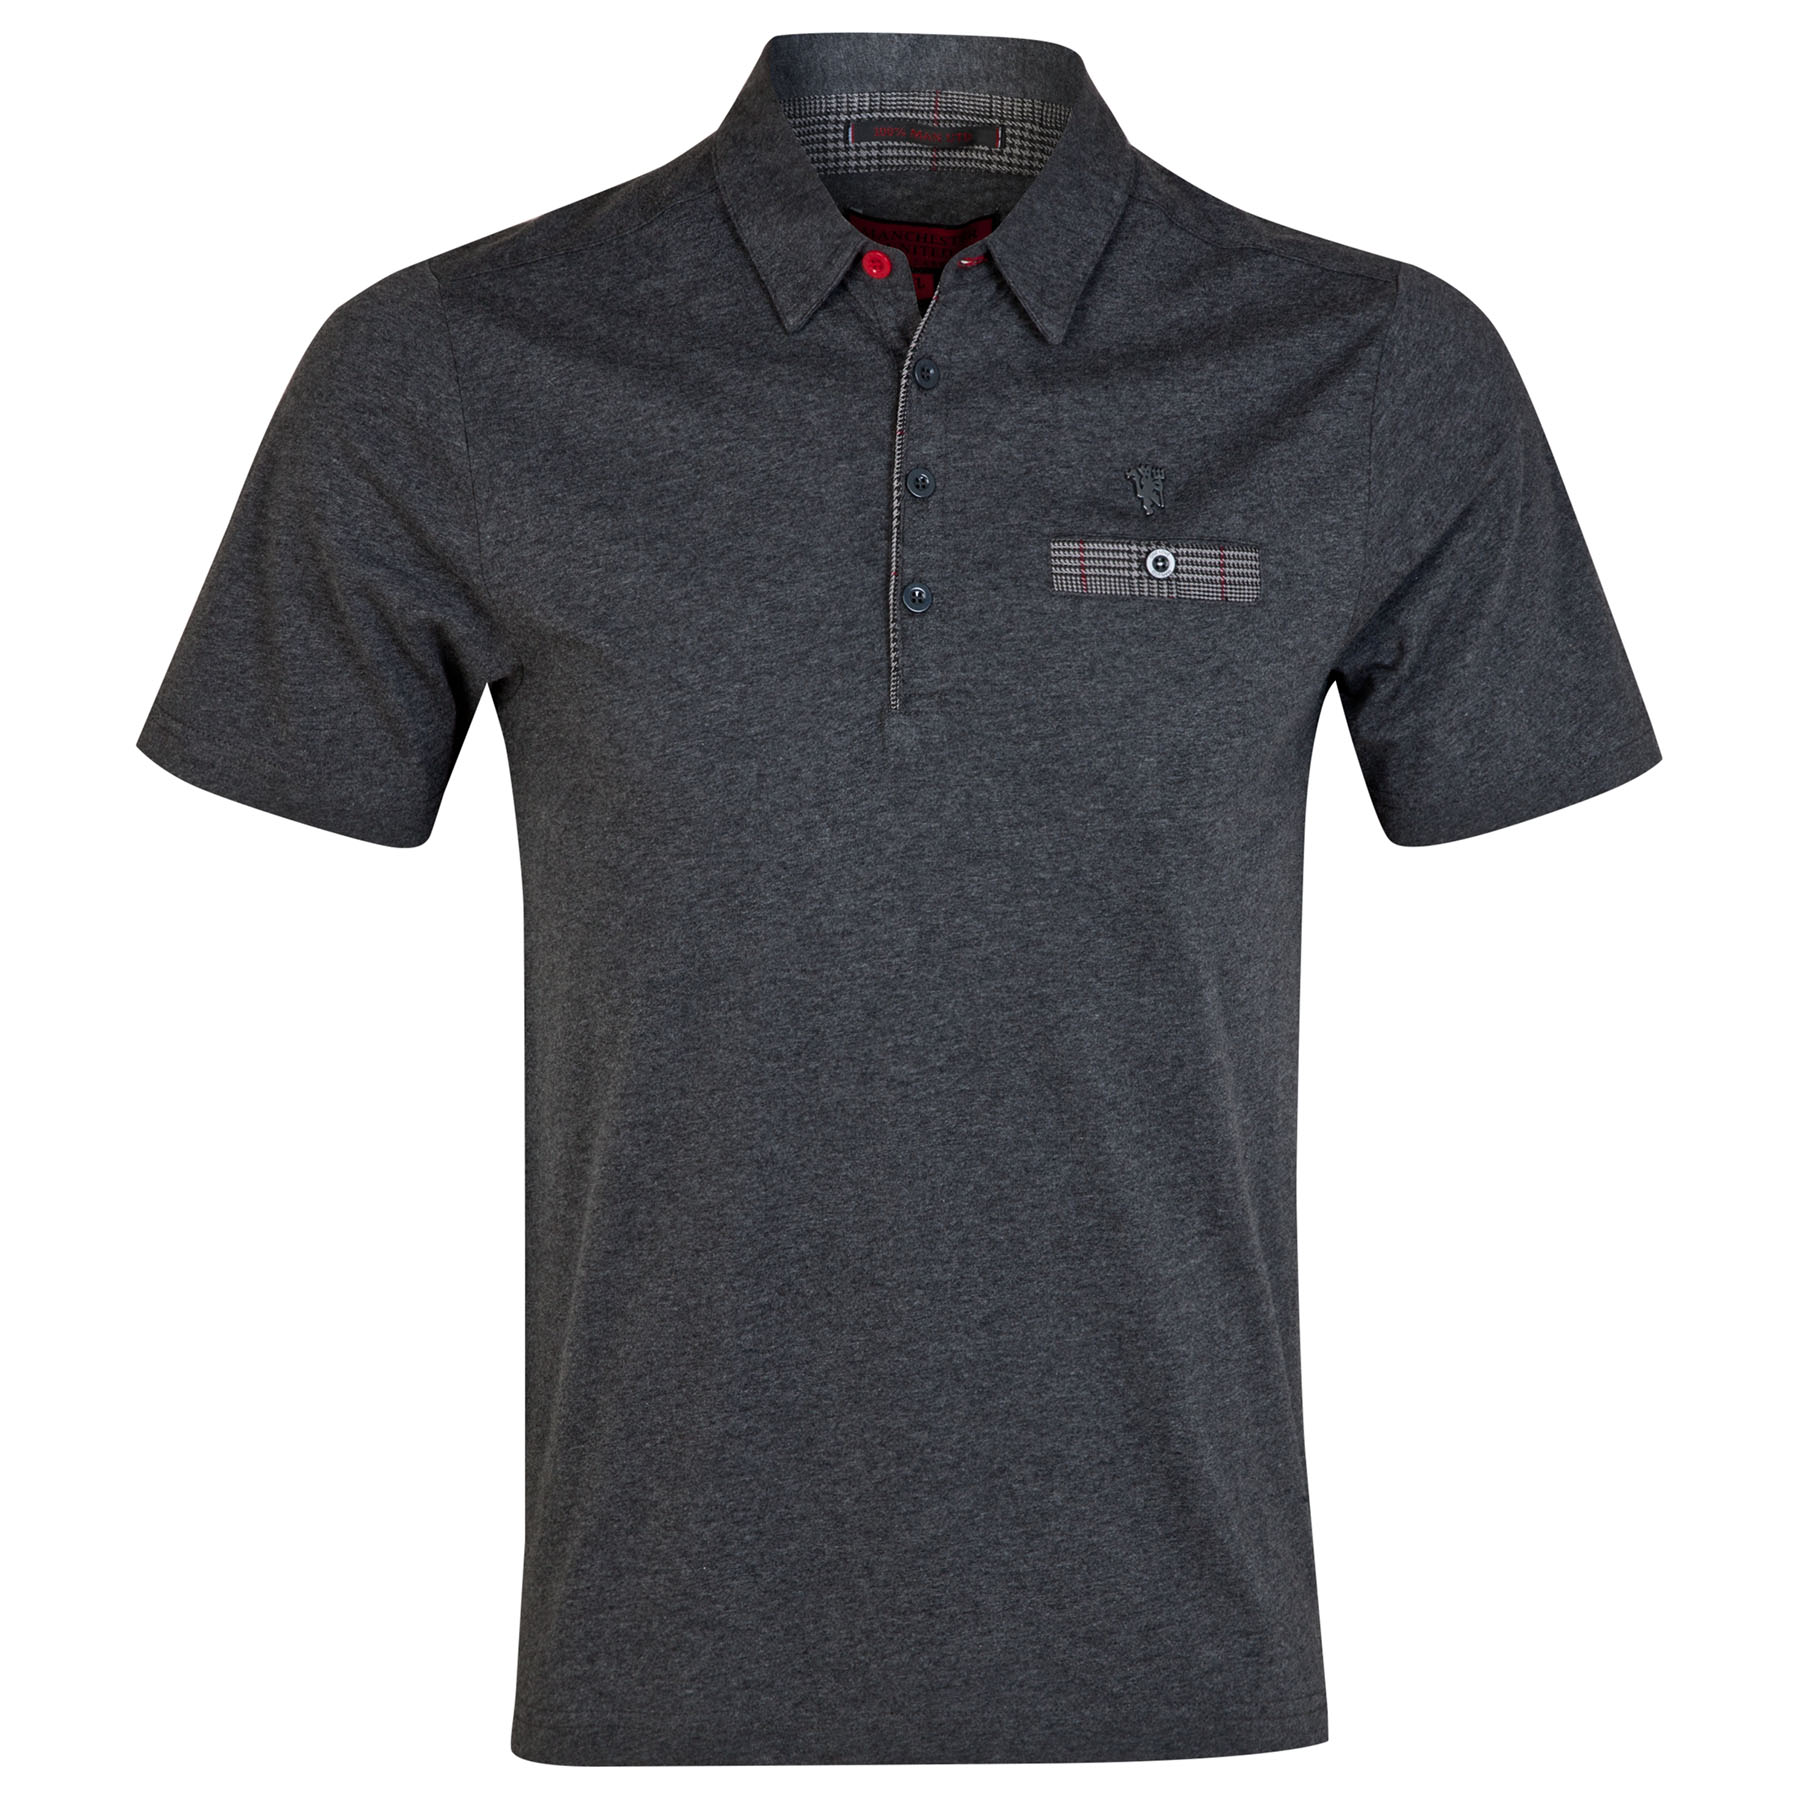 Manchester United Red Label Pocket Polo Shirt - Charcoal - Mens